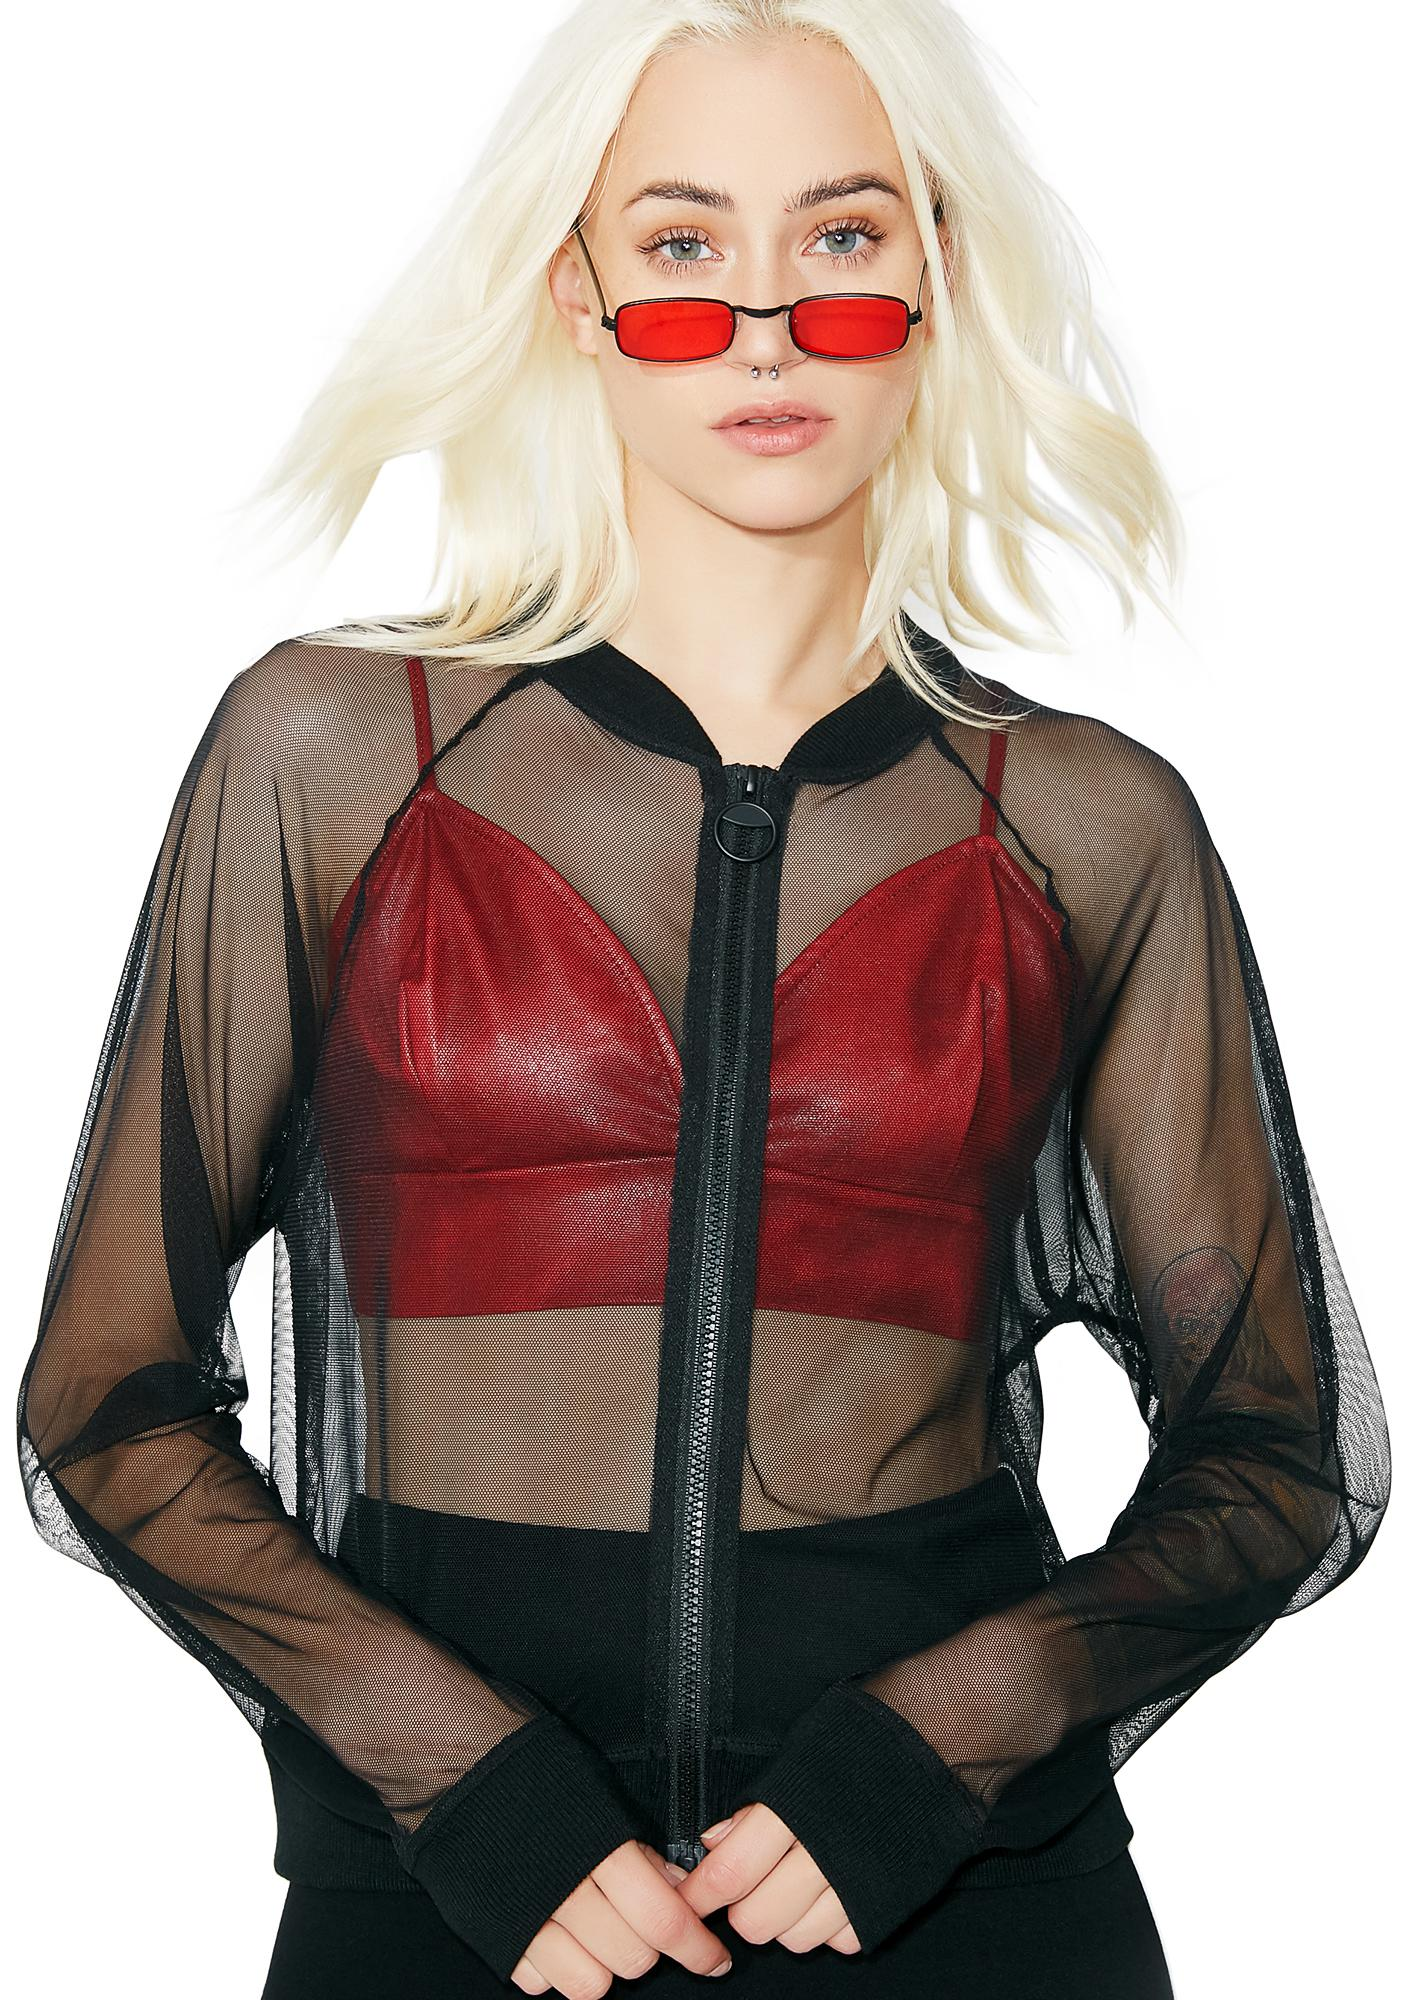 See No Evil Sheer Bomber Jacket